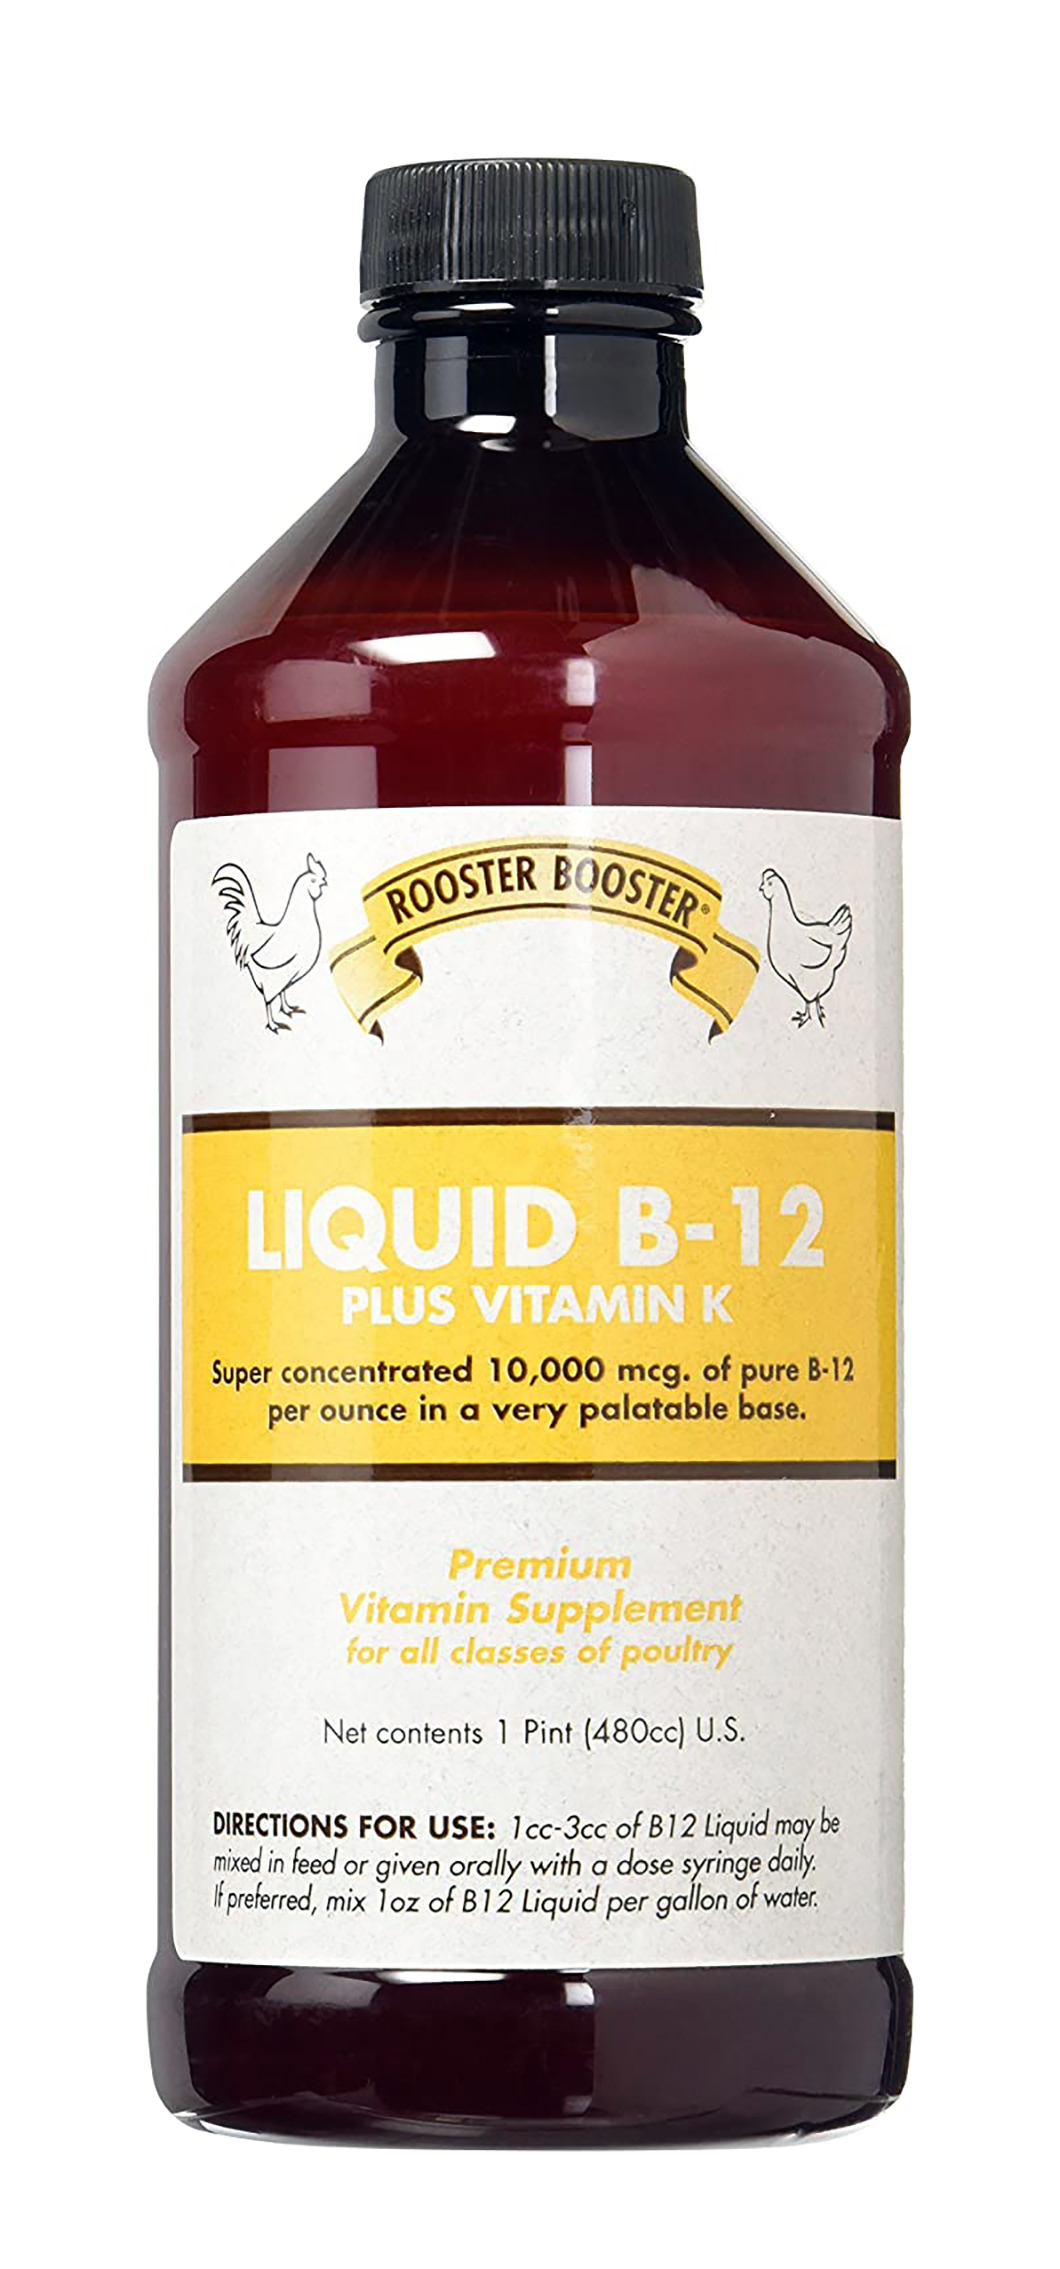 B-12 Liquid review